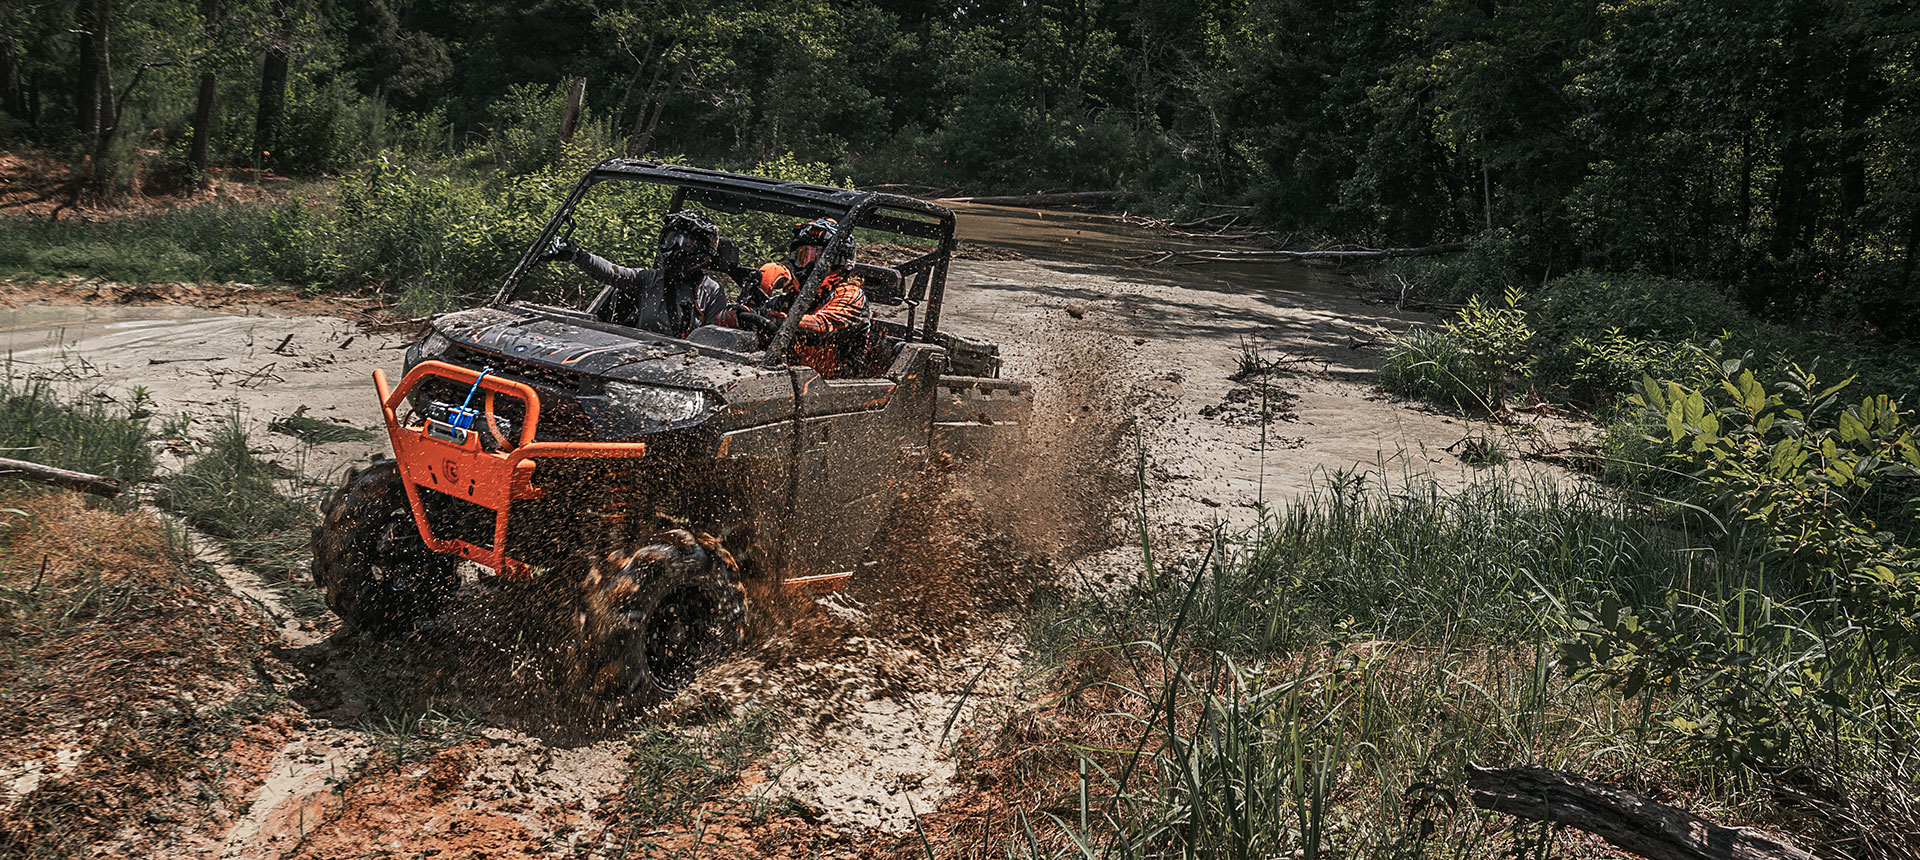 Polaris UTV getting dirty in the mud